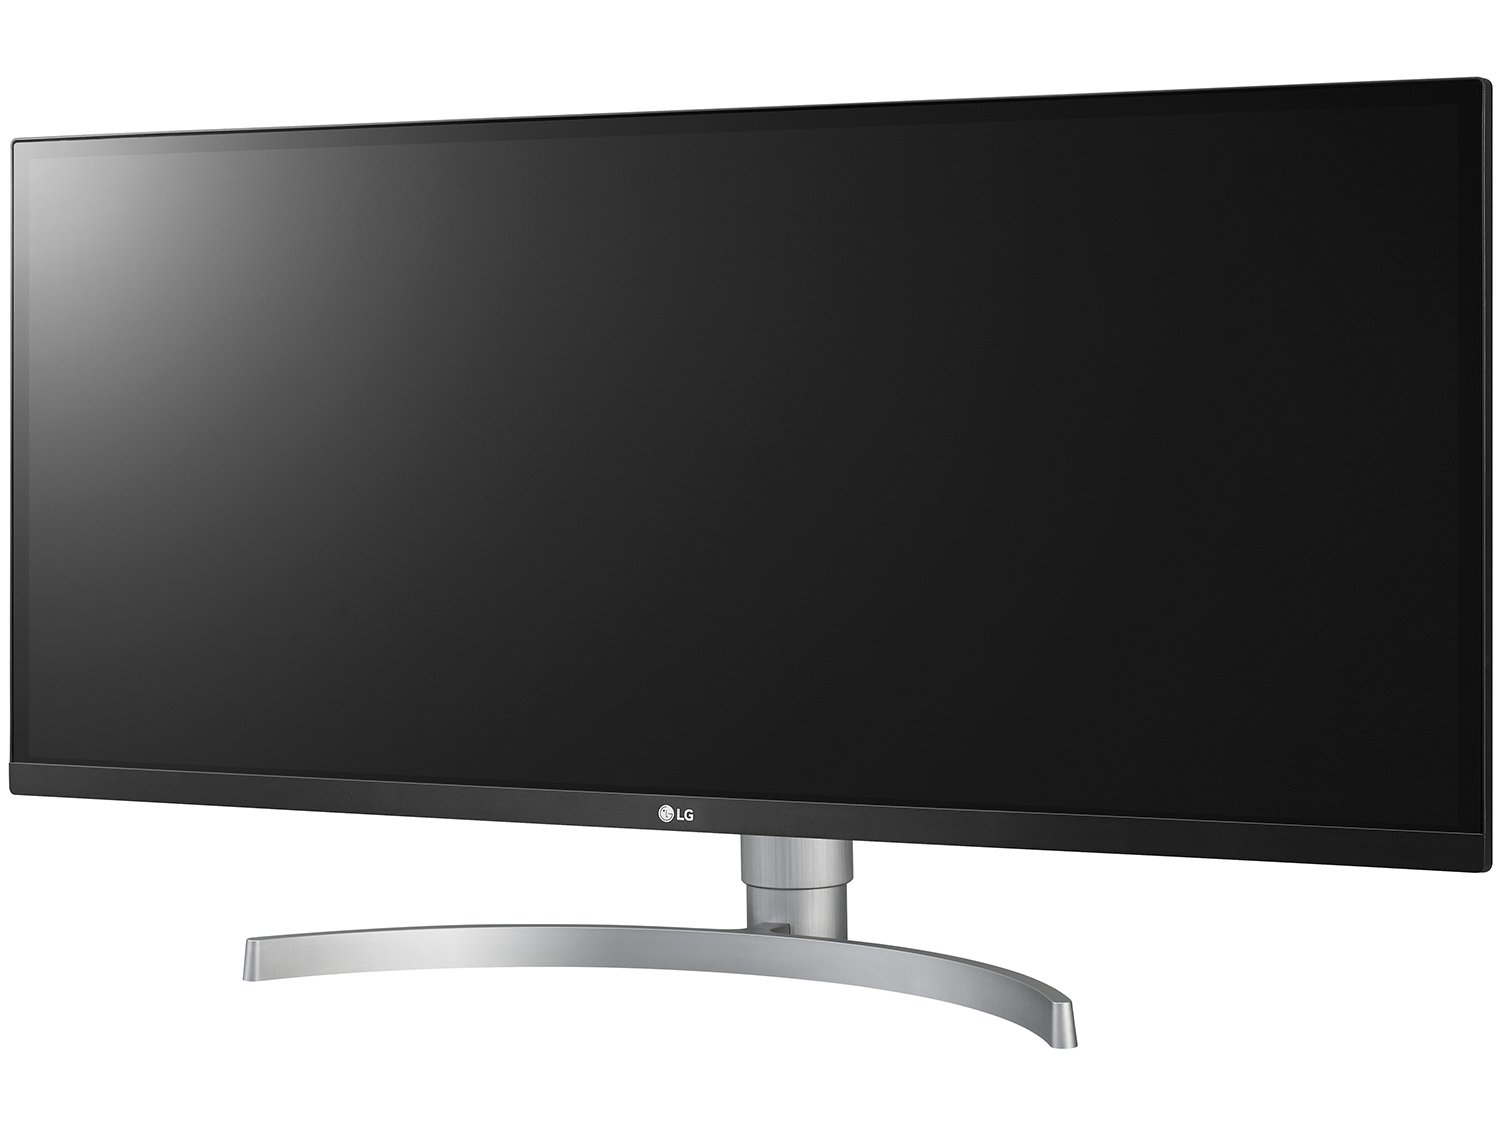 Foto 2 - Monitor para PC Full HD UltraWide LG LED IPS 34 - 34WK650